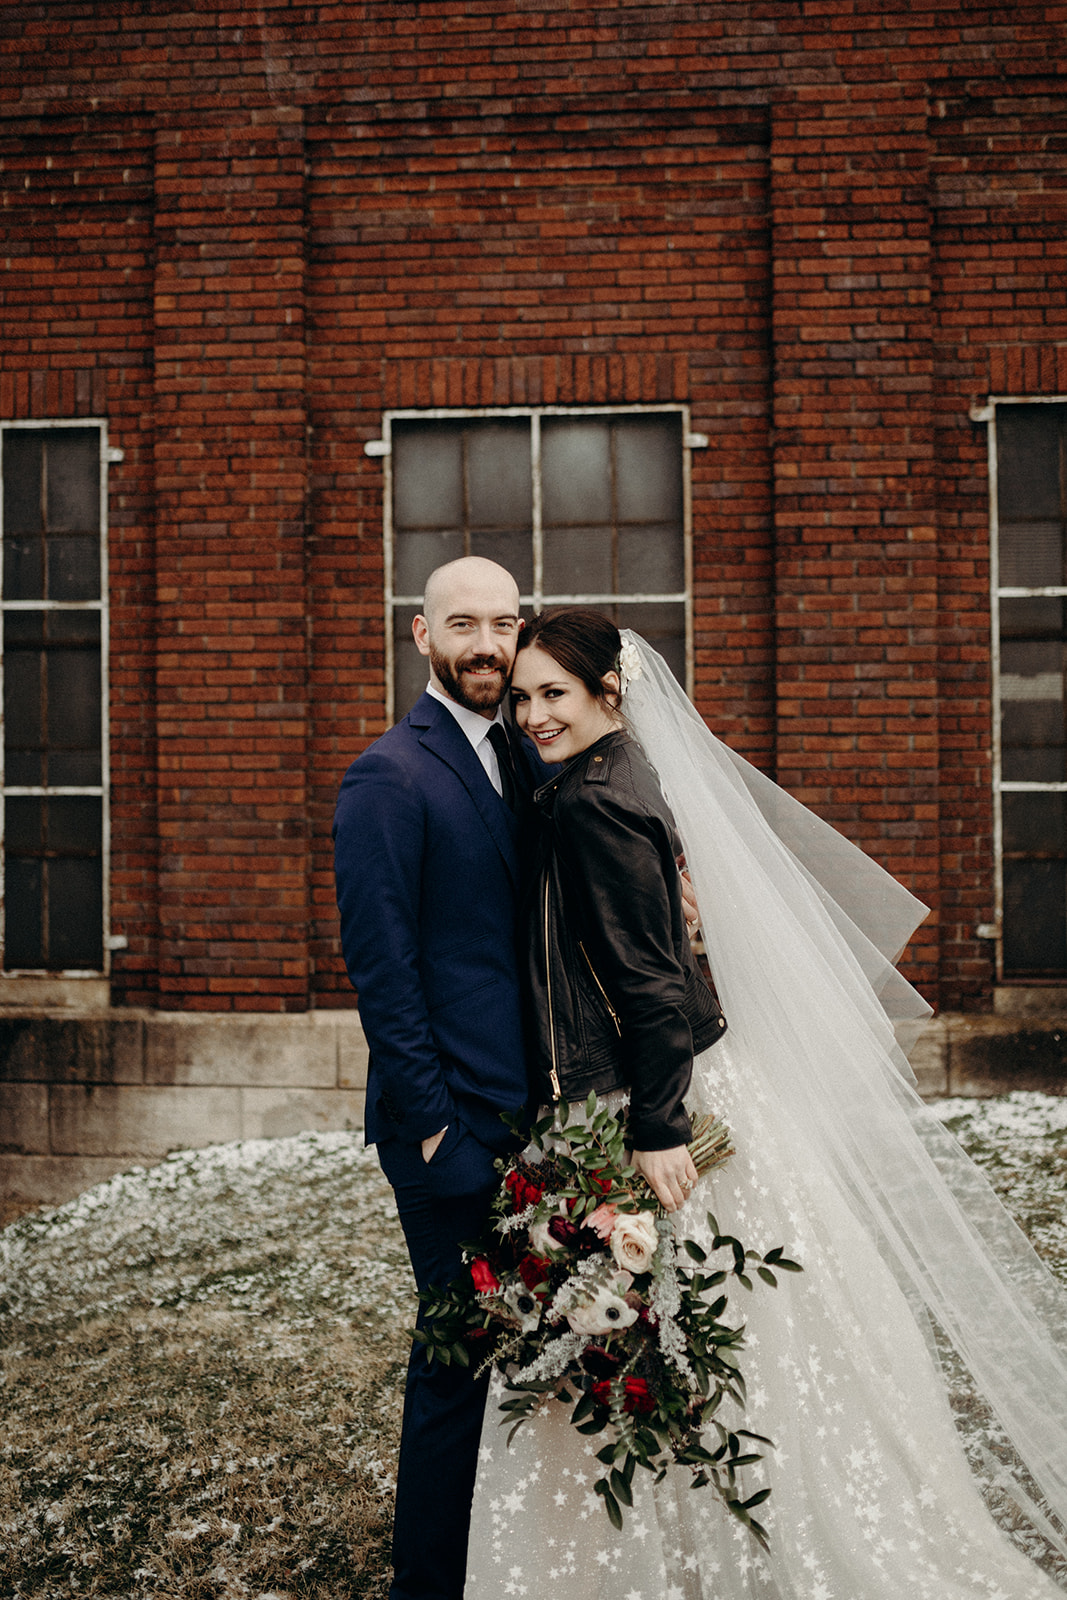 Next morning bride and groom photos! Lush bridal bouquet with peonies, garden roses, and anemones. Nashville, TN luxury wedding floral design with the bride in a leather jacket!!